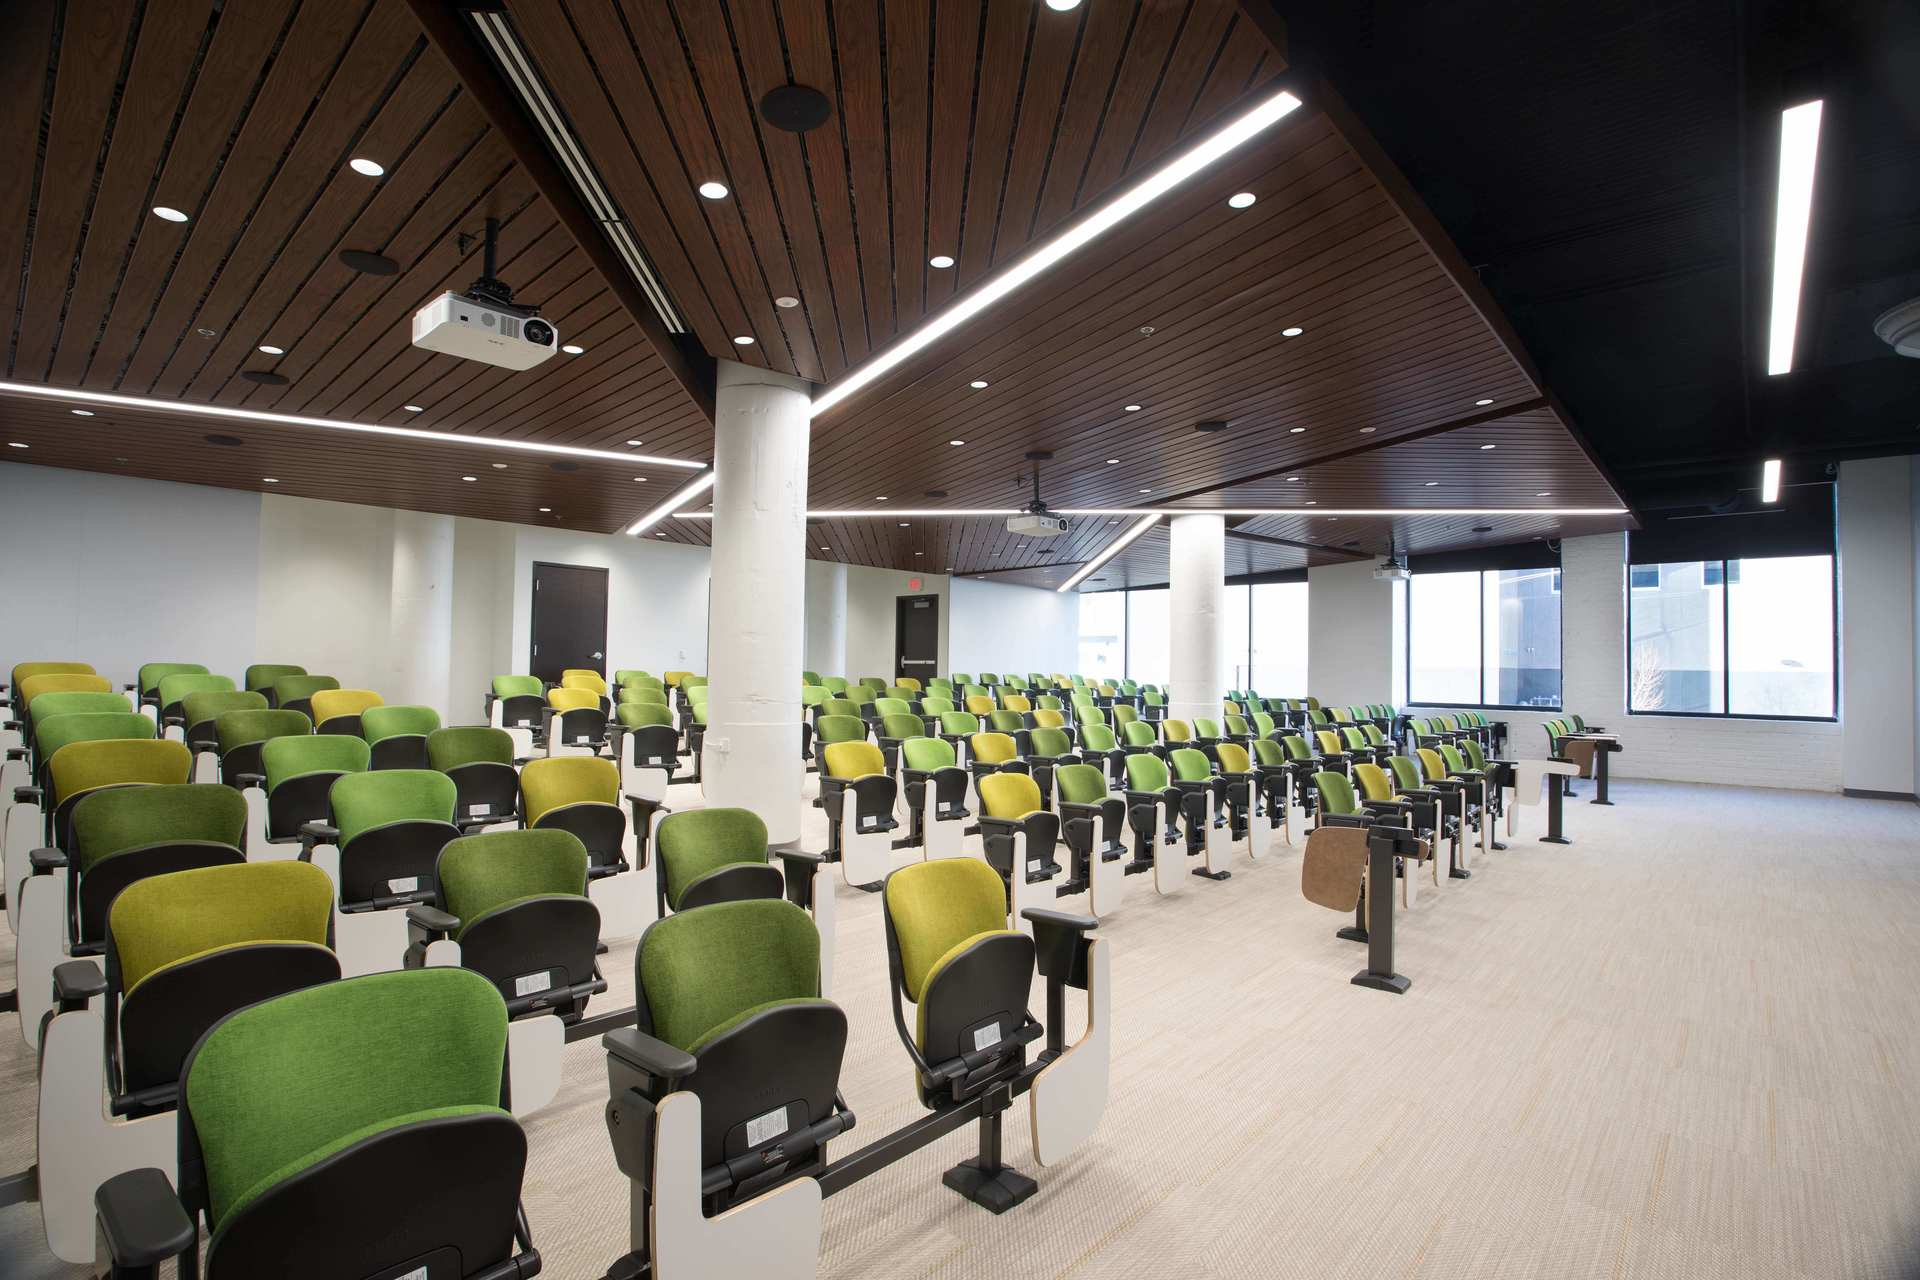 The beautiful lecture hall at the Junior Achievement of the Upper Midwest headquarters.